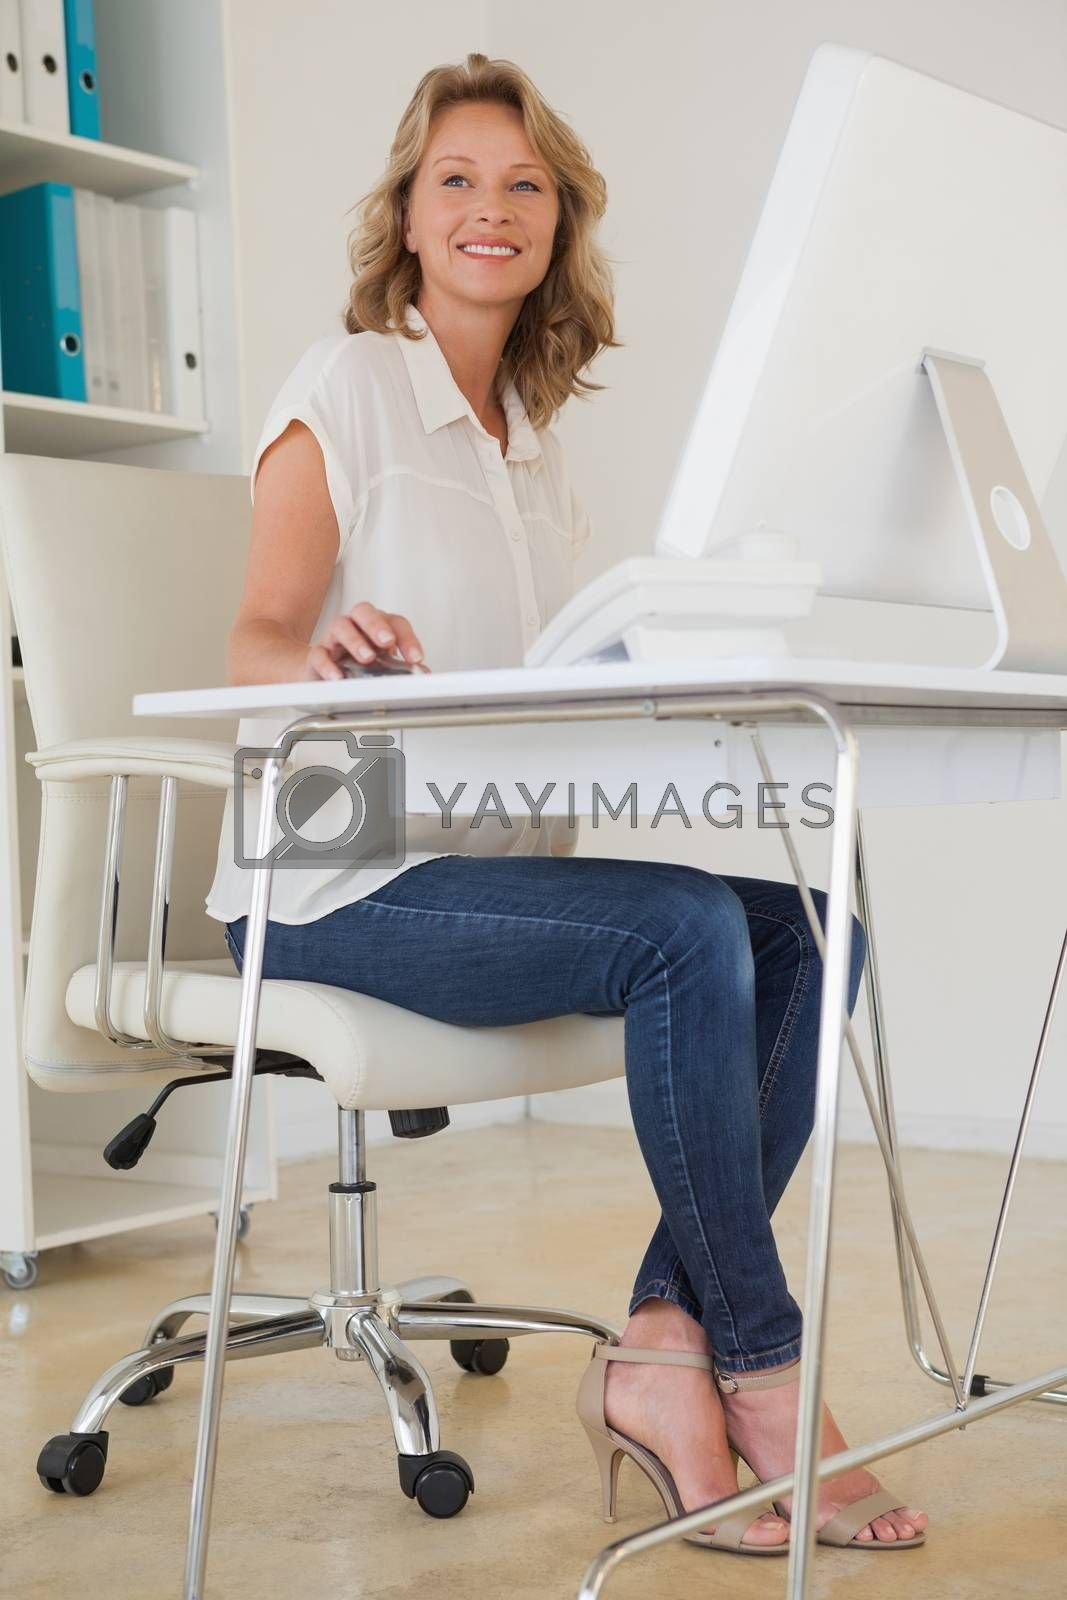 Royalty free image of Casual businesswoman smiling at her desk by Wavebreakmedia